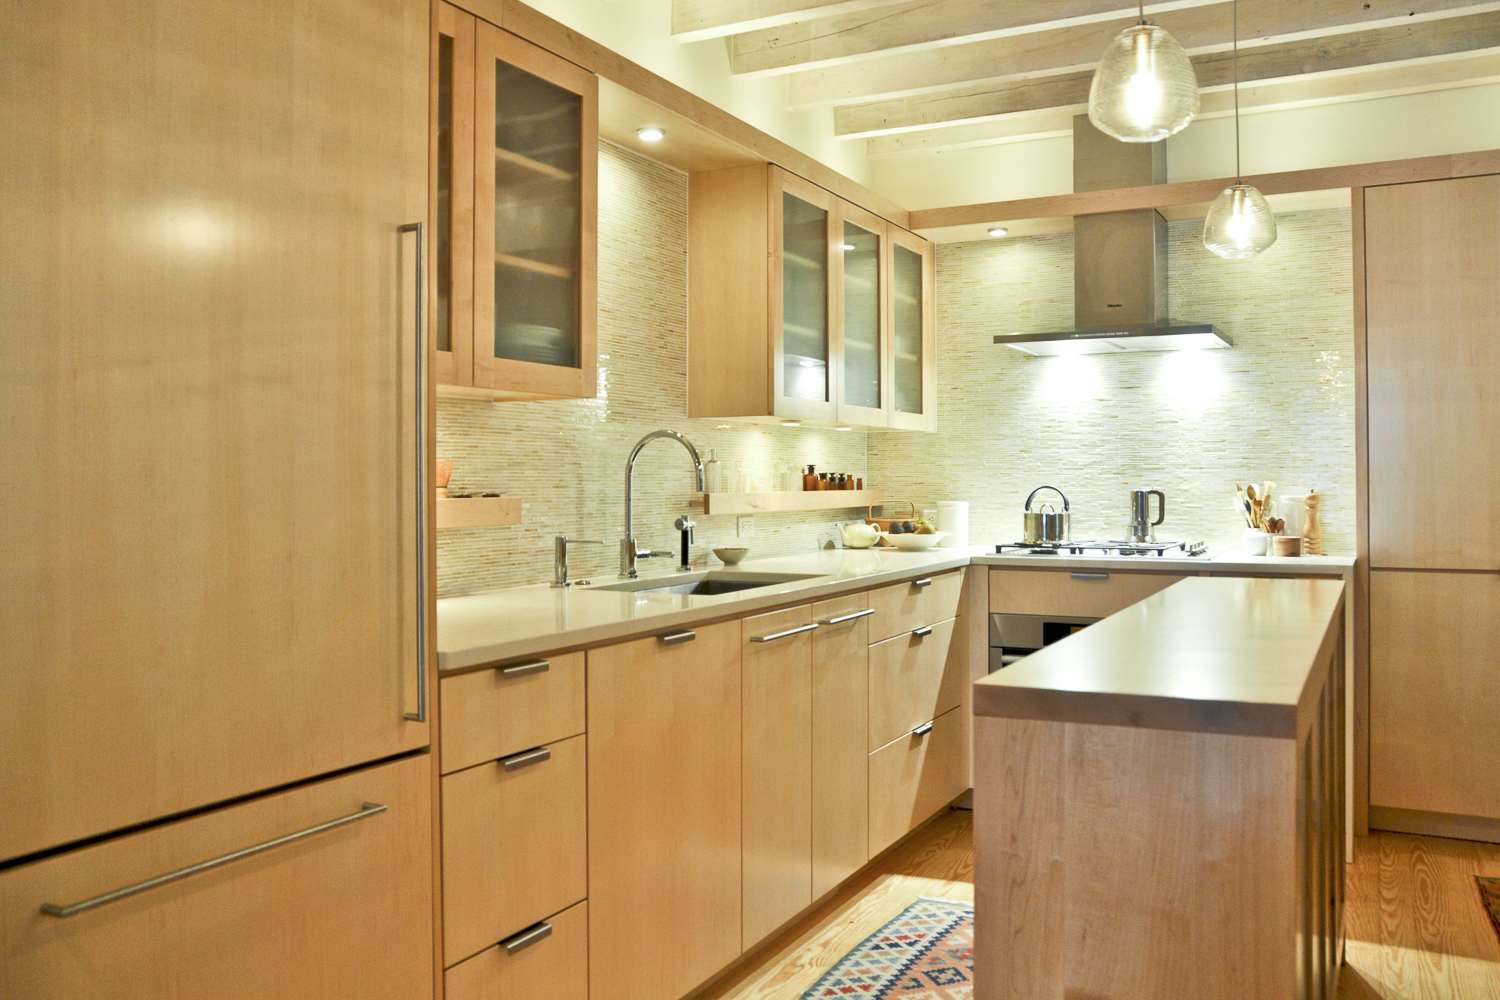 lombard_kitchen-1.jpg